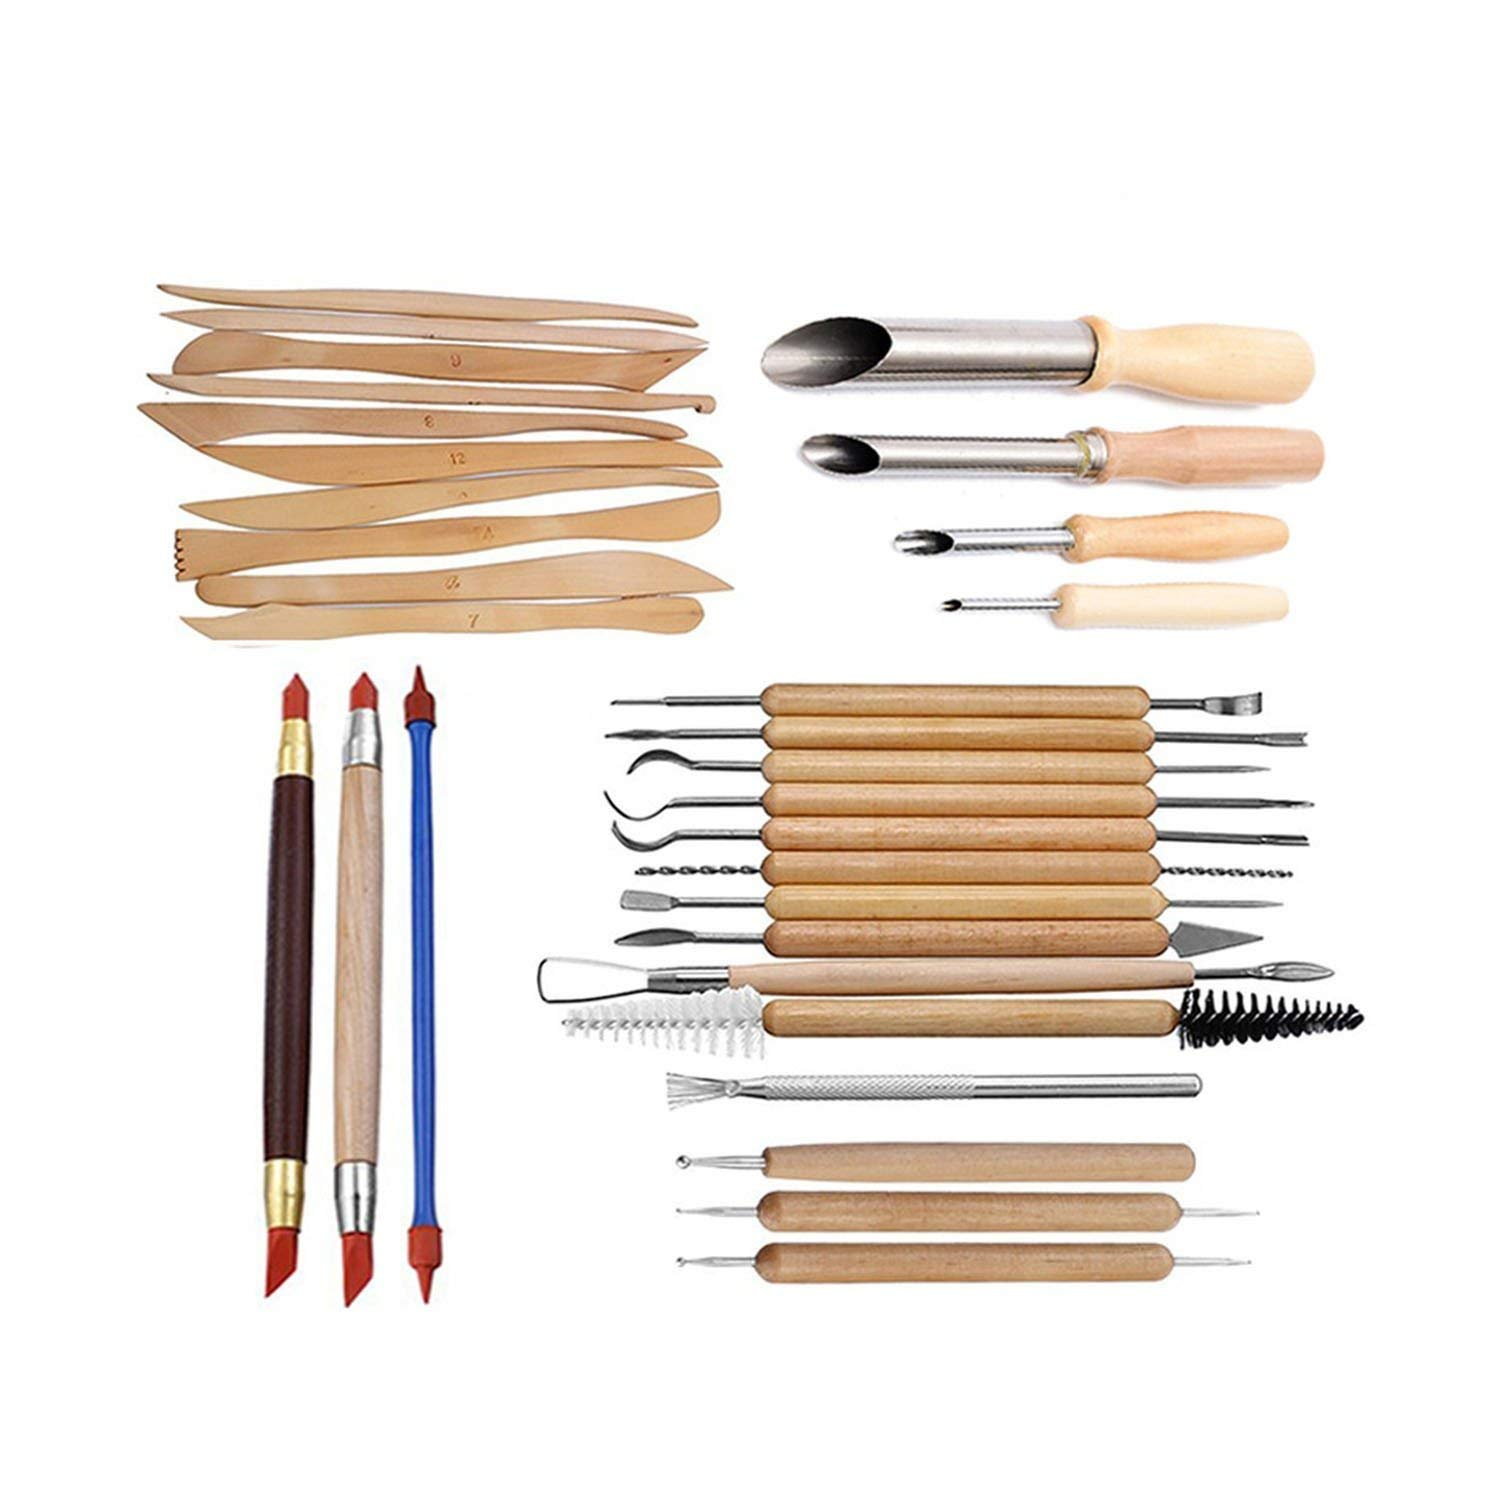 Pottery Clay Sculpture Tool Indentation Silicone Pen Sculpture Knife Set Combination,31 Piece Set